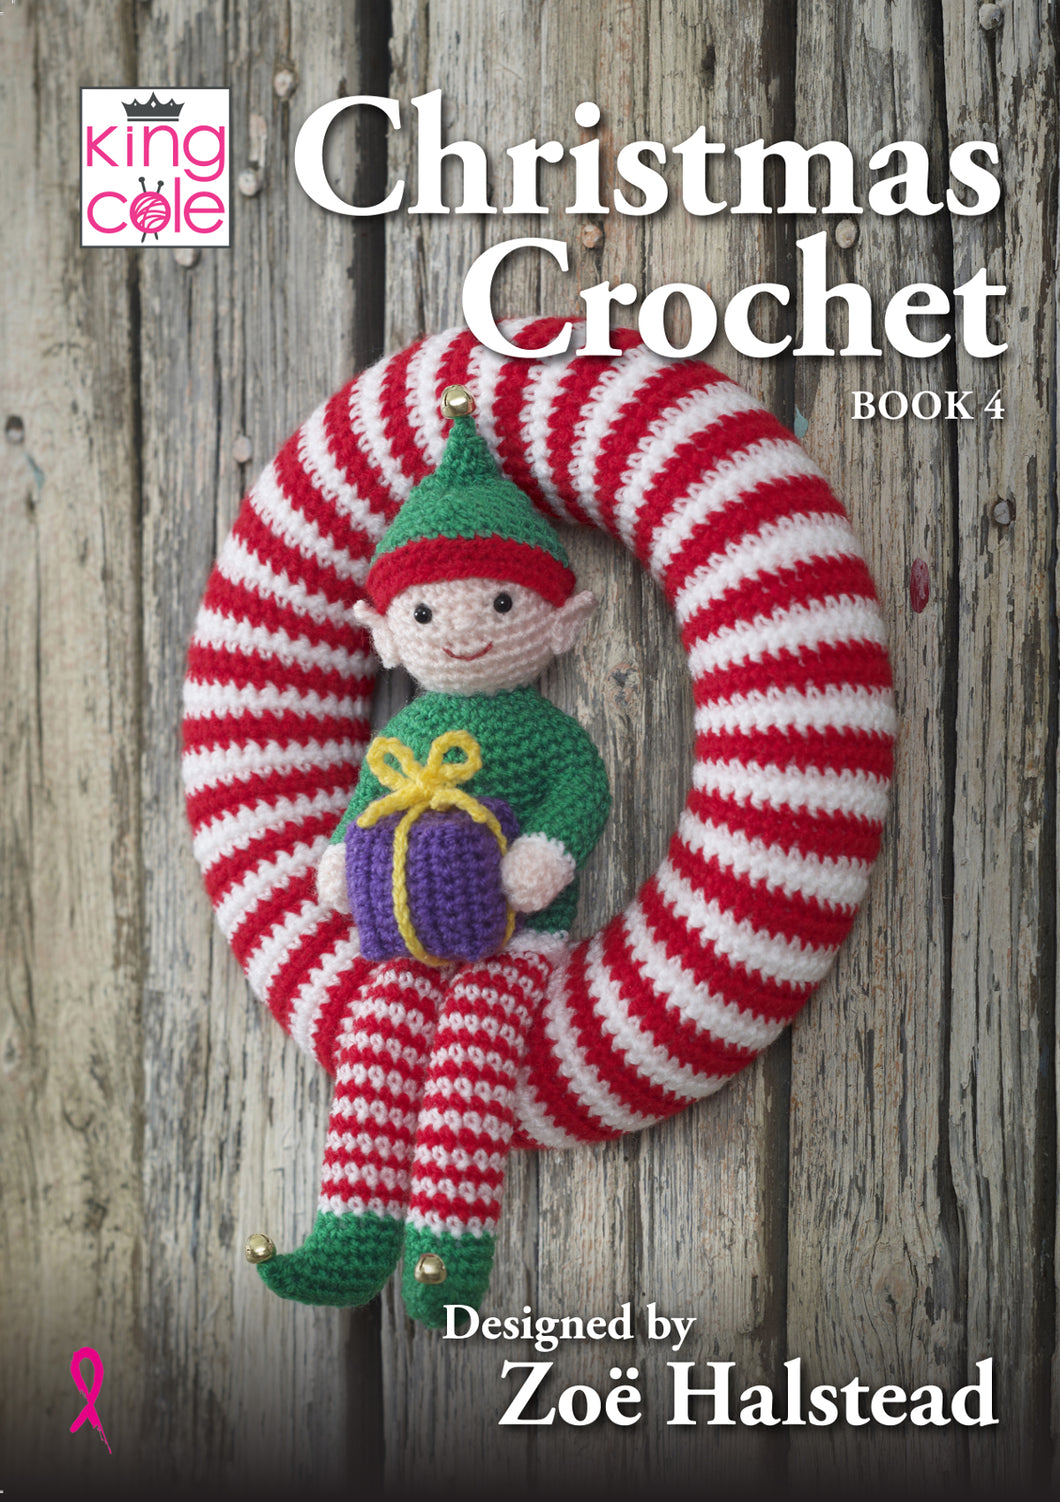 http://images.esellerpro.com/2278/I/159/923/king-cole-christmas-crochet-book-4-four-1.jpg